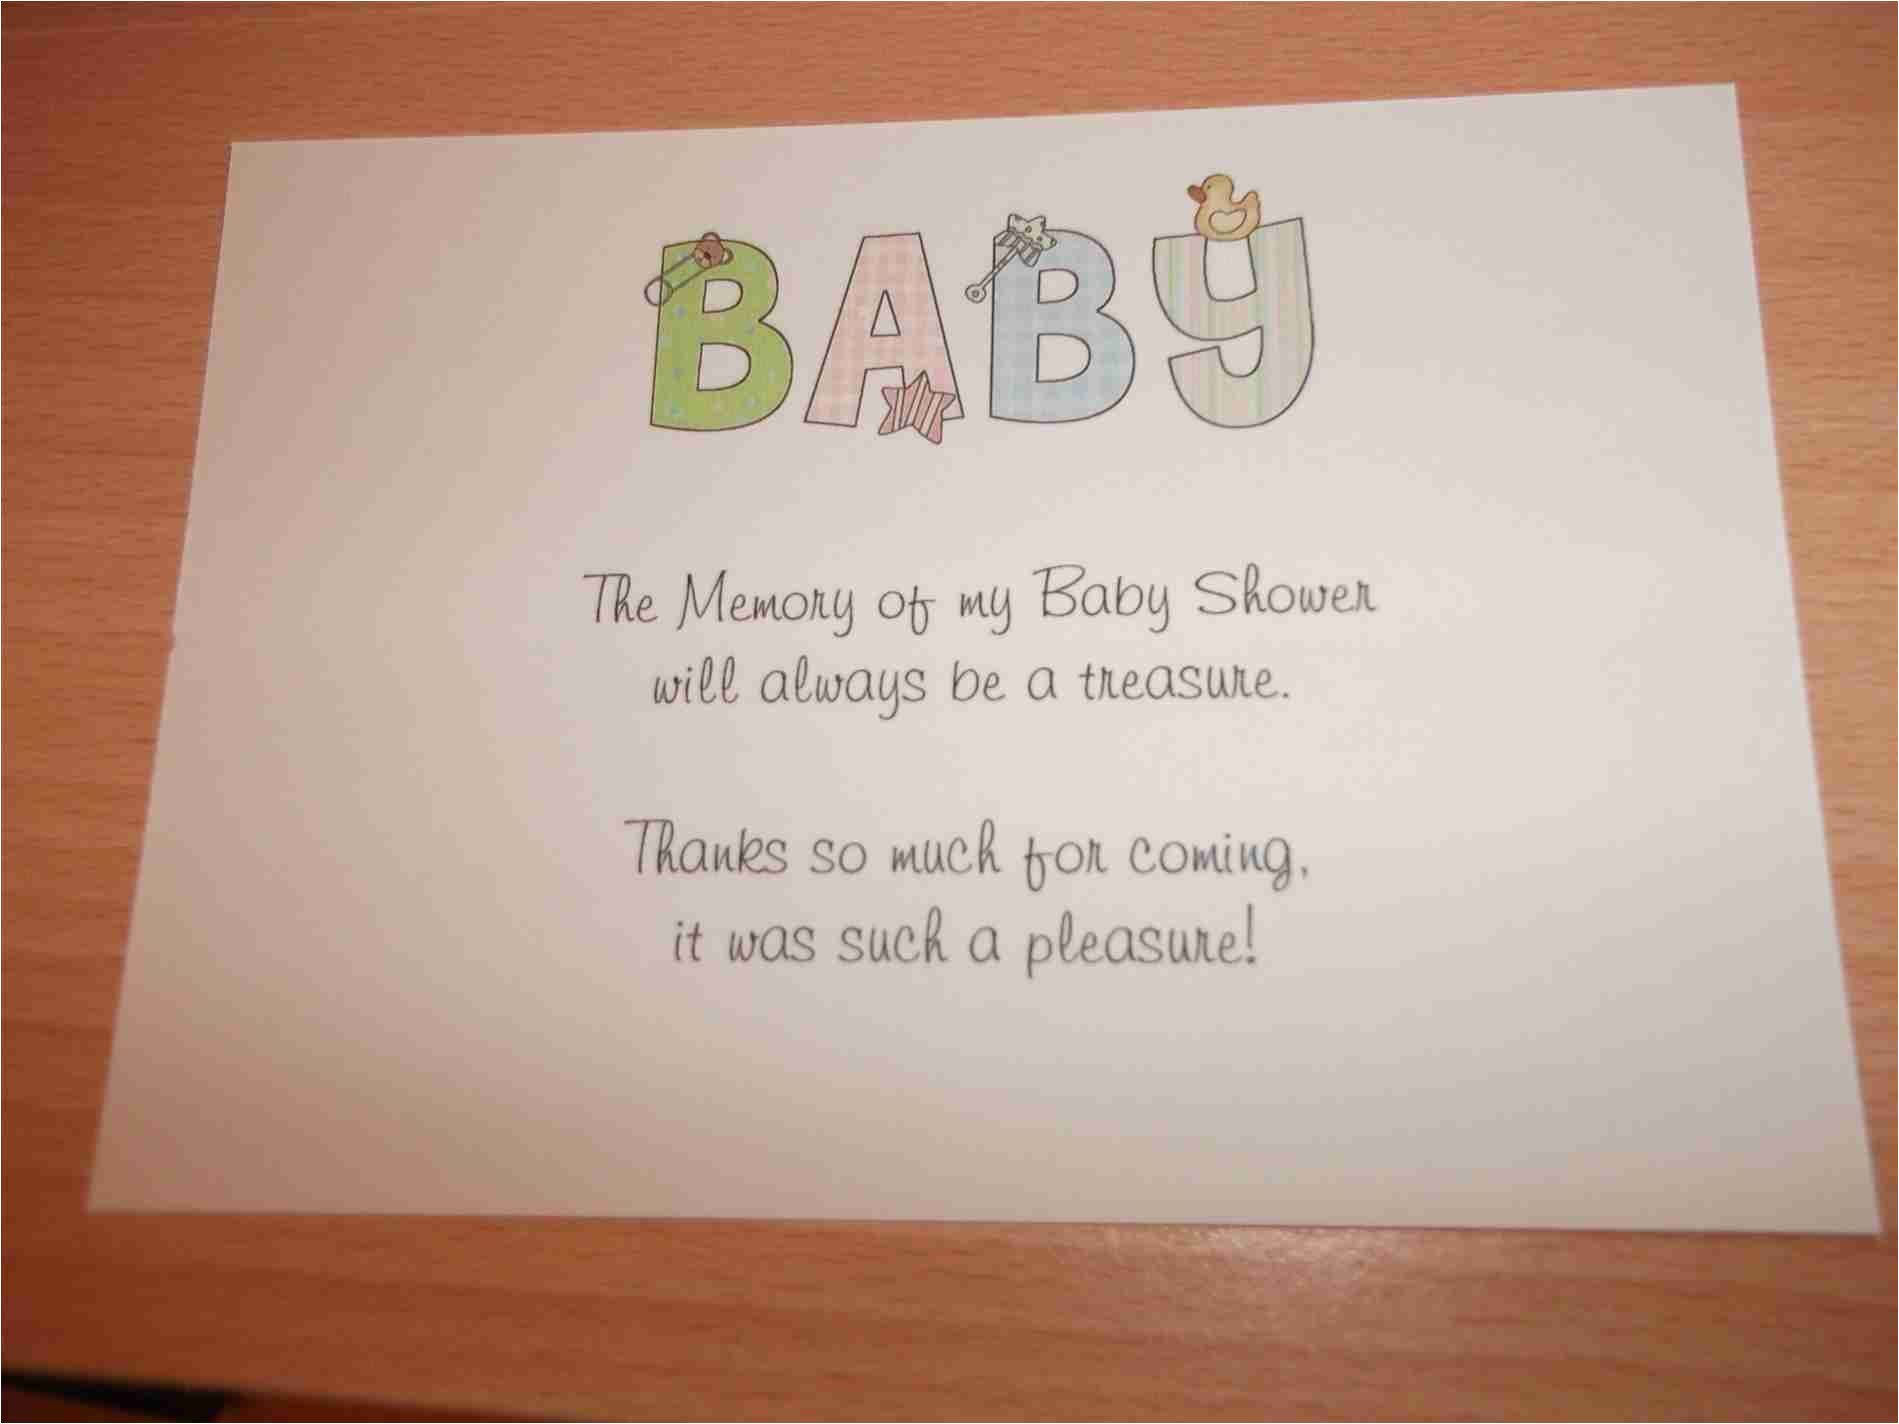 Thank You In Spanish Card Wedding Thank You Card Wording Spanish with Images Baby